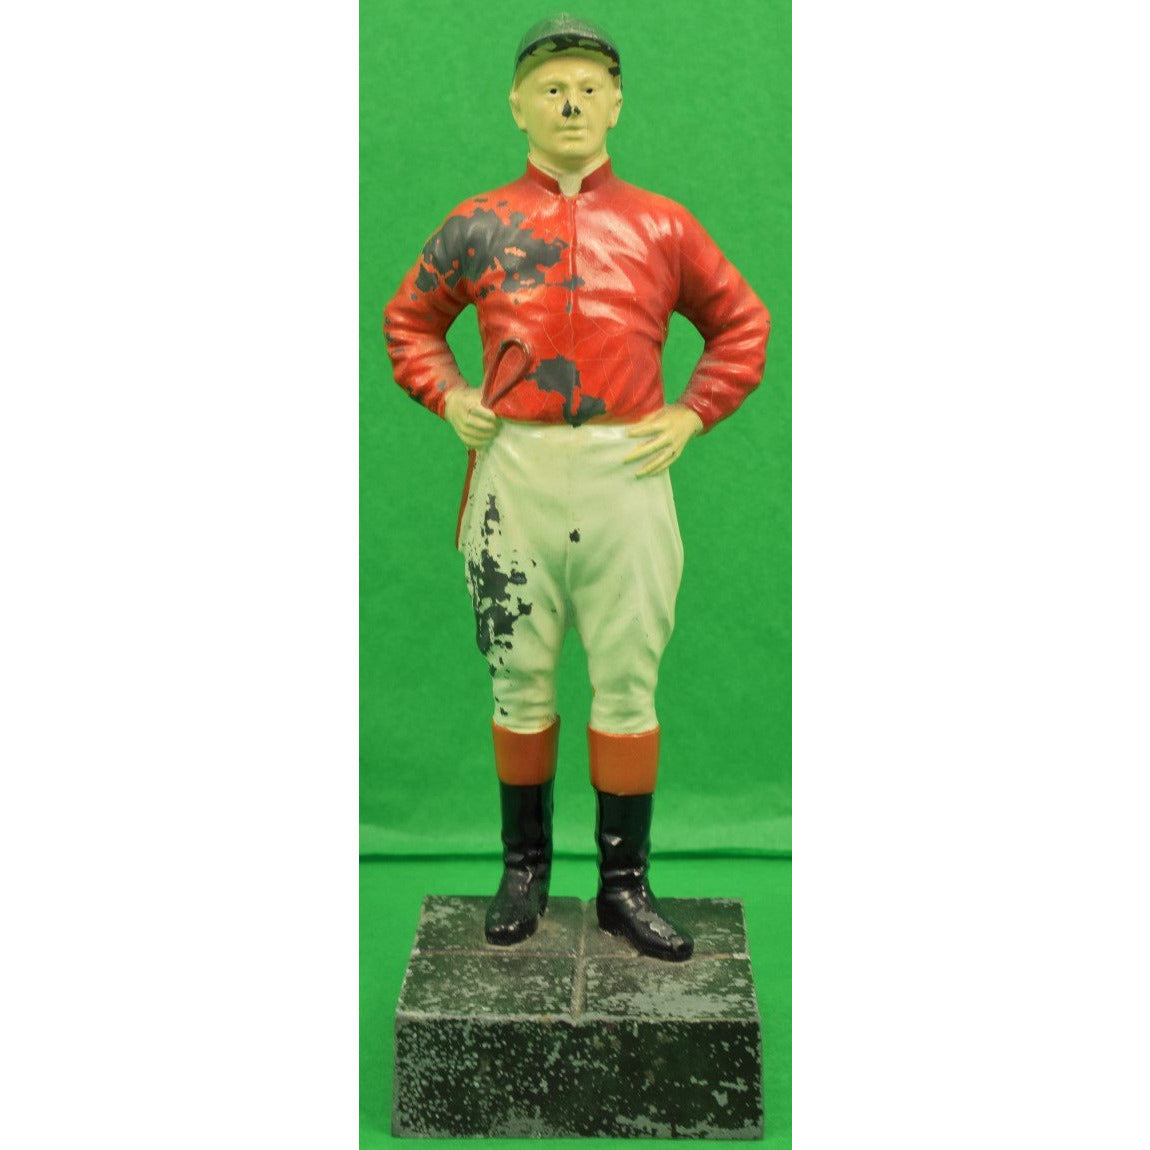 21 Club Jockey Bookend